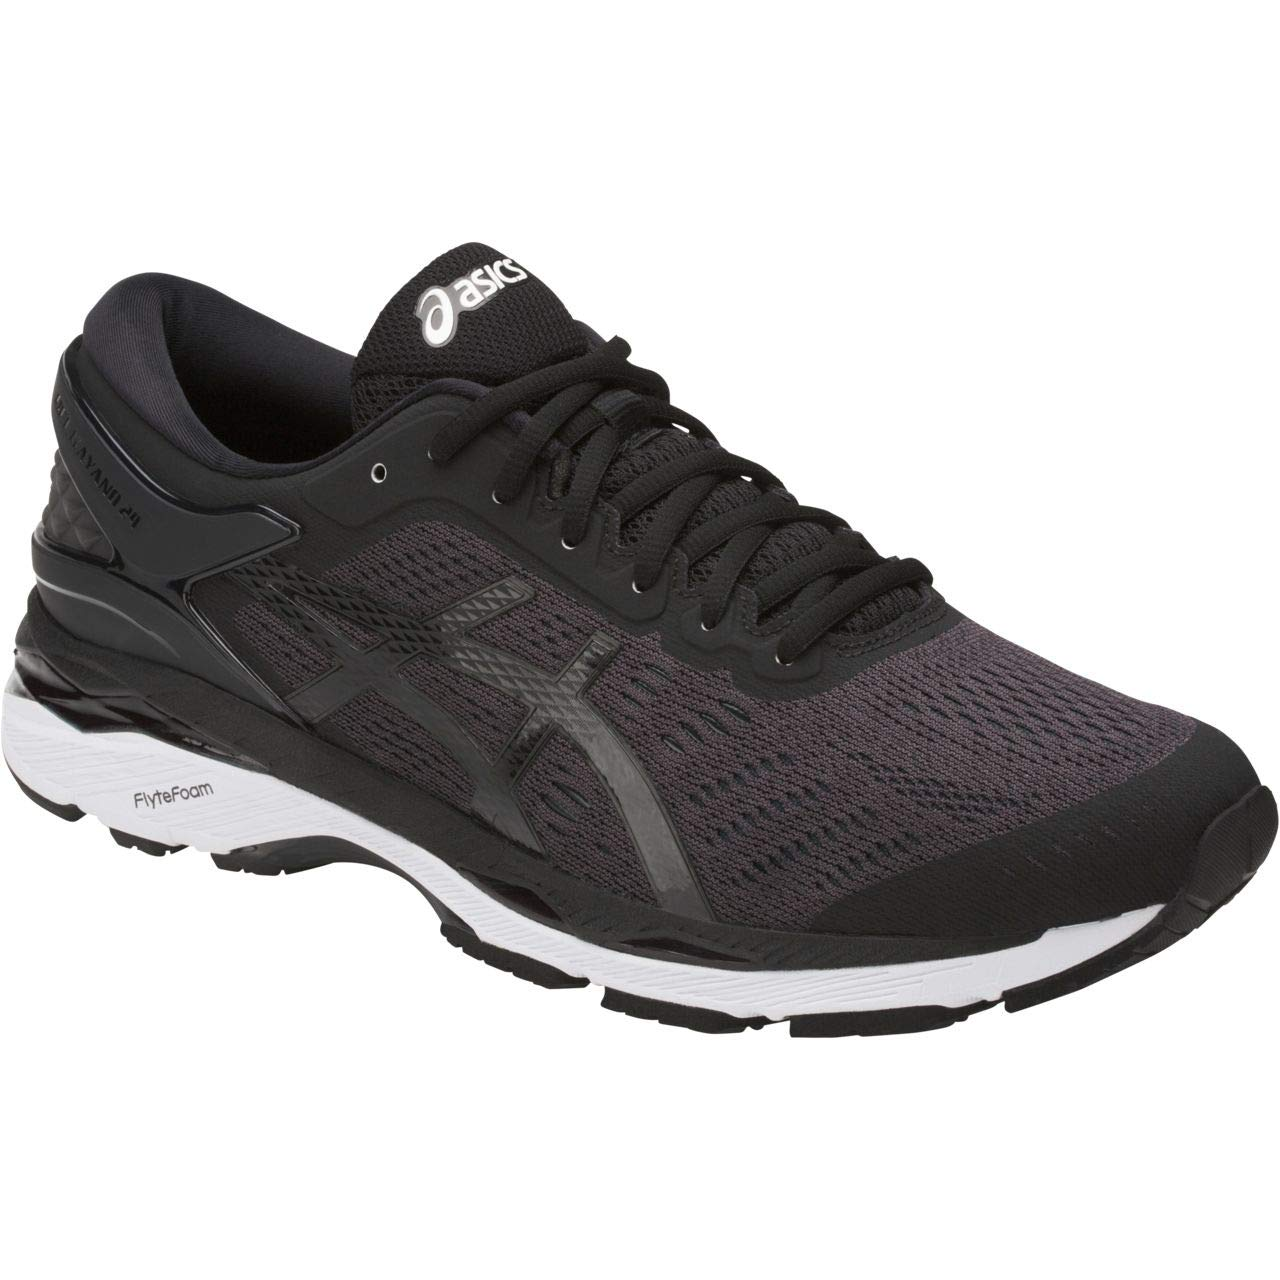 ASICS Mens Gel-Kayano 24 Running Shoe Black/Phantom/White 6.5 Medium US by ASICS (Image #1)